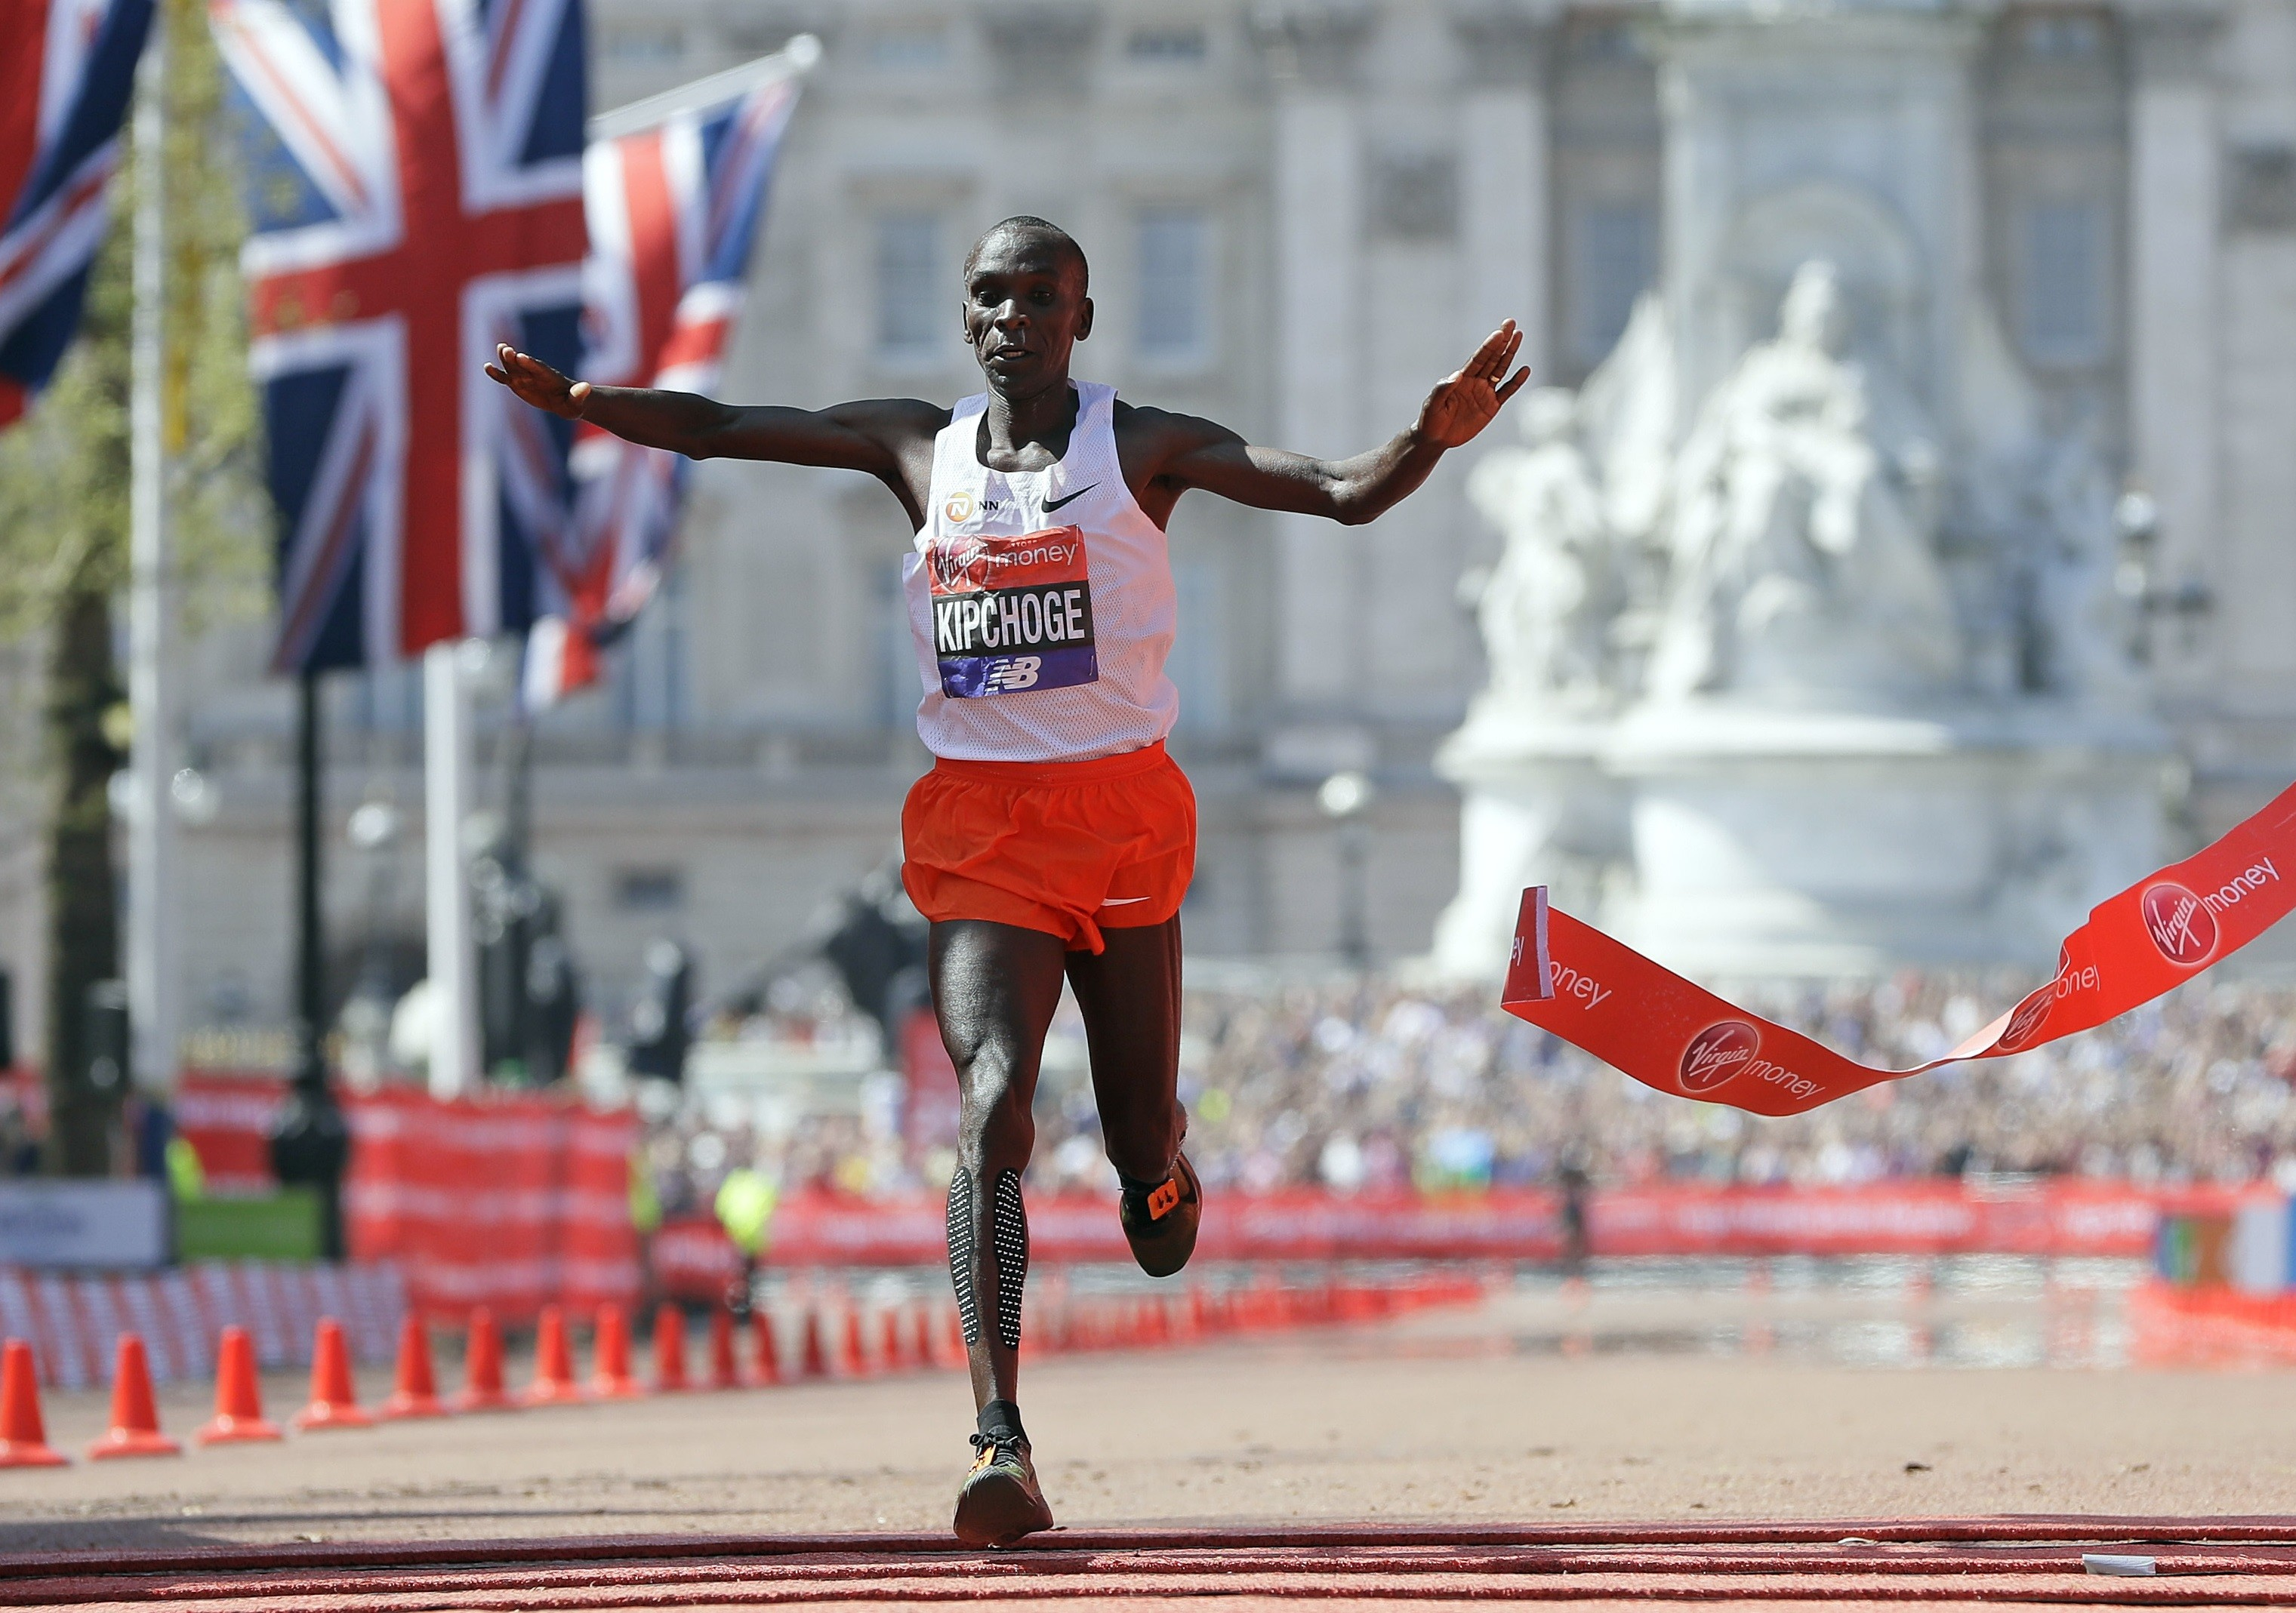 Eliud Kipchoge says what makes a runner dope is easy money, he wants to empower our youth